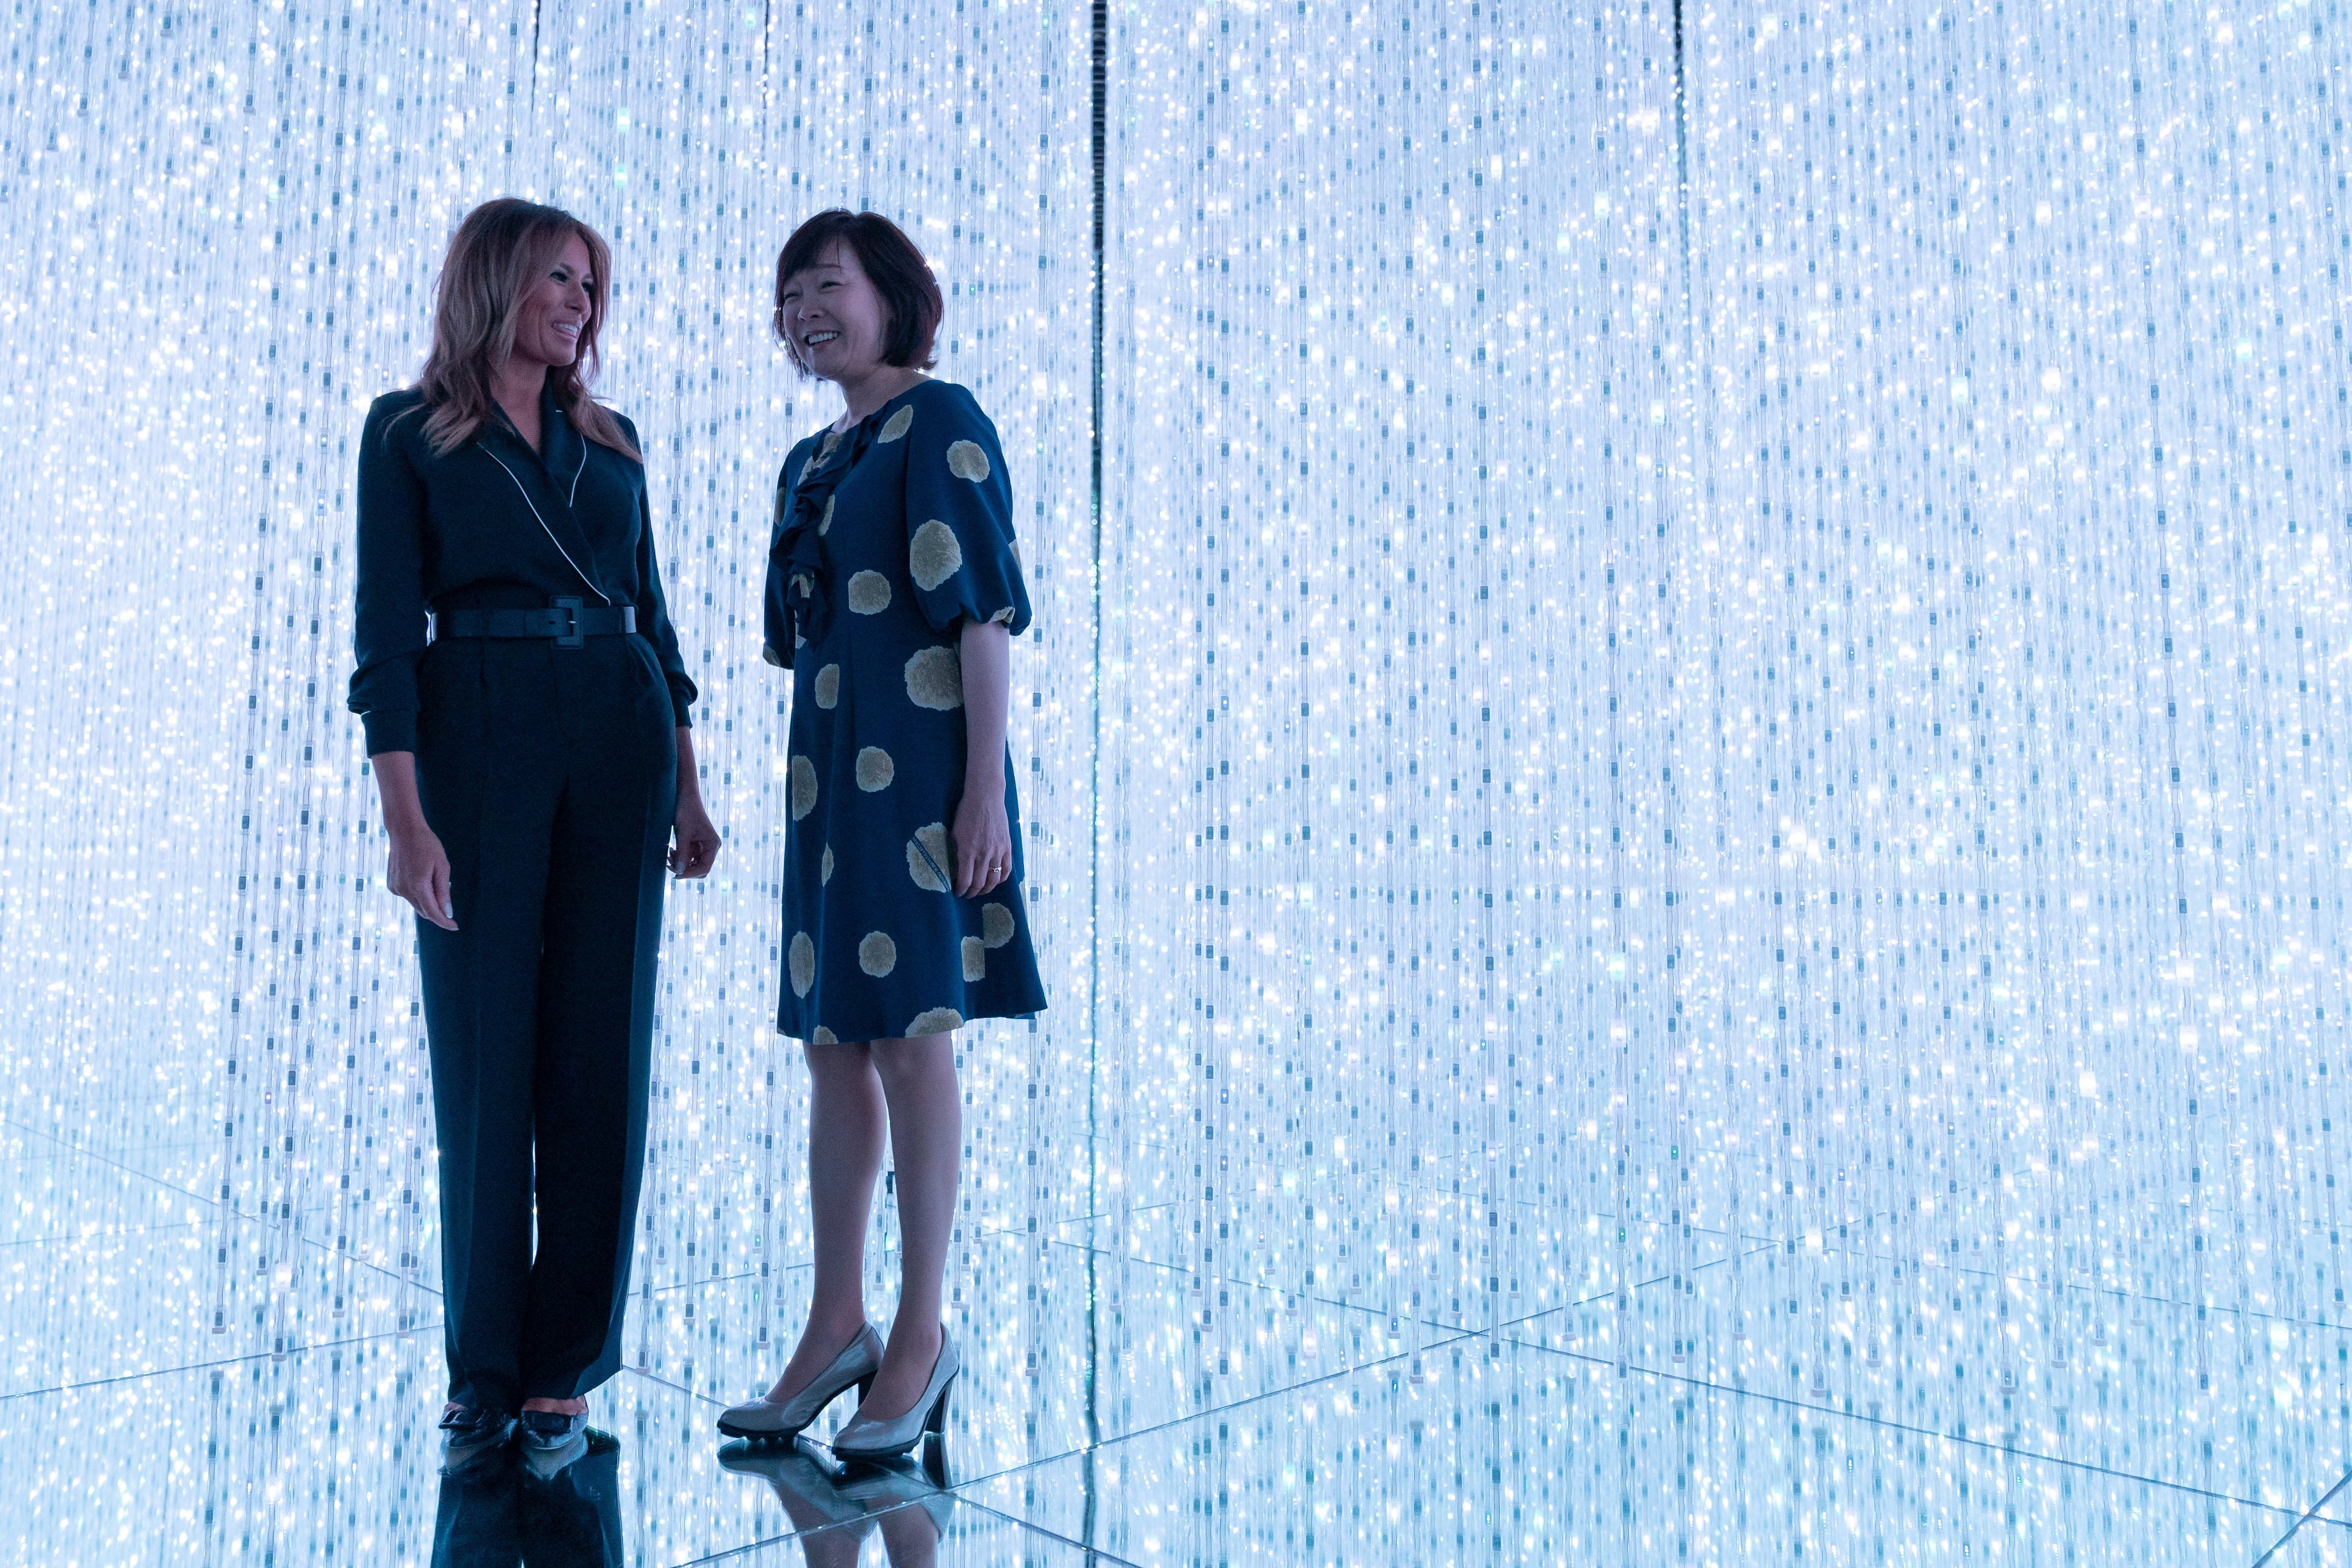 Melania Trump and Akie Abe at the Mori Building Digital Art Museum in Tokyo, Japan | Photo: Getty Images